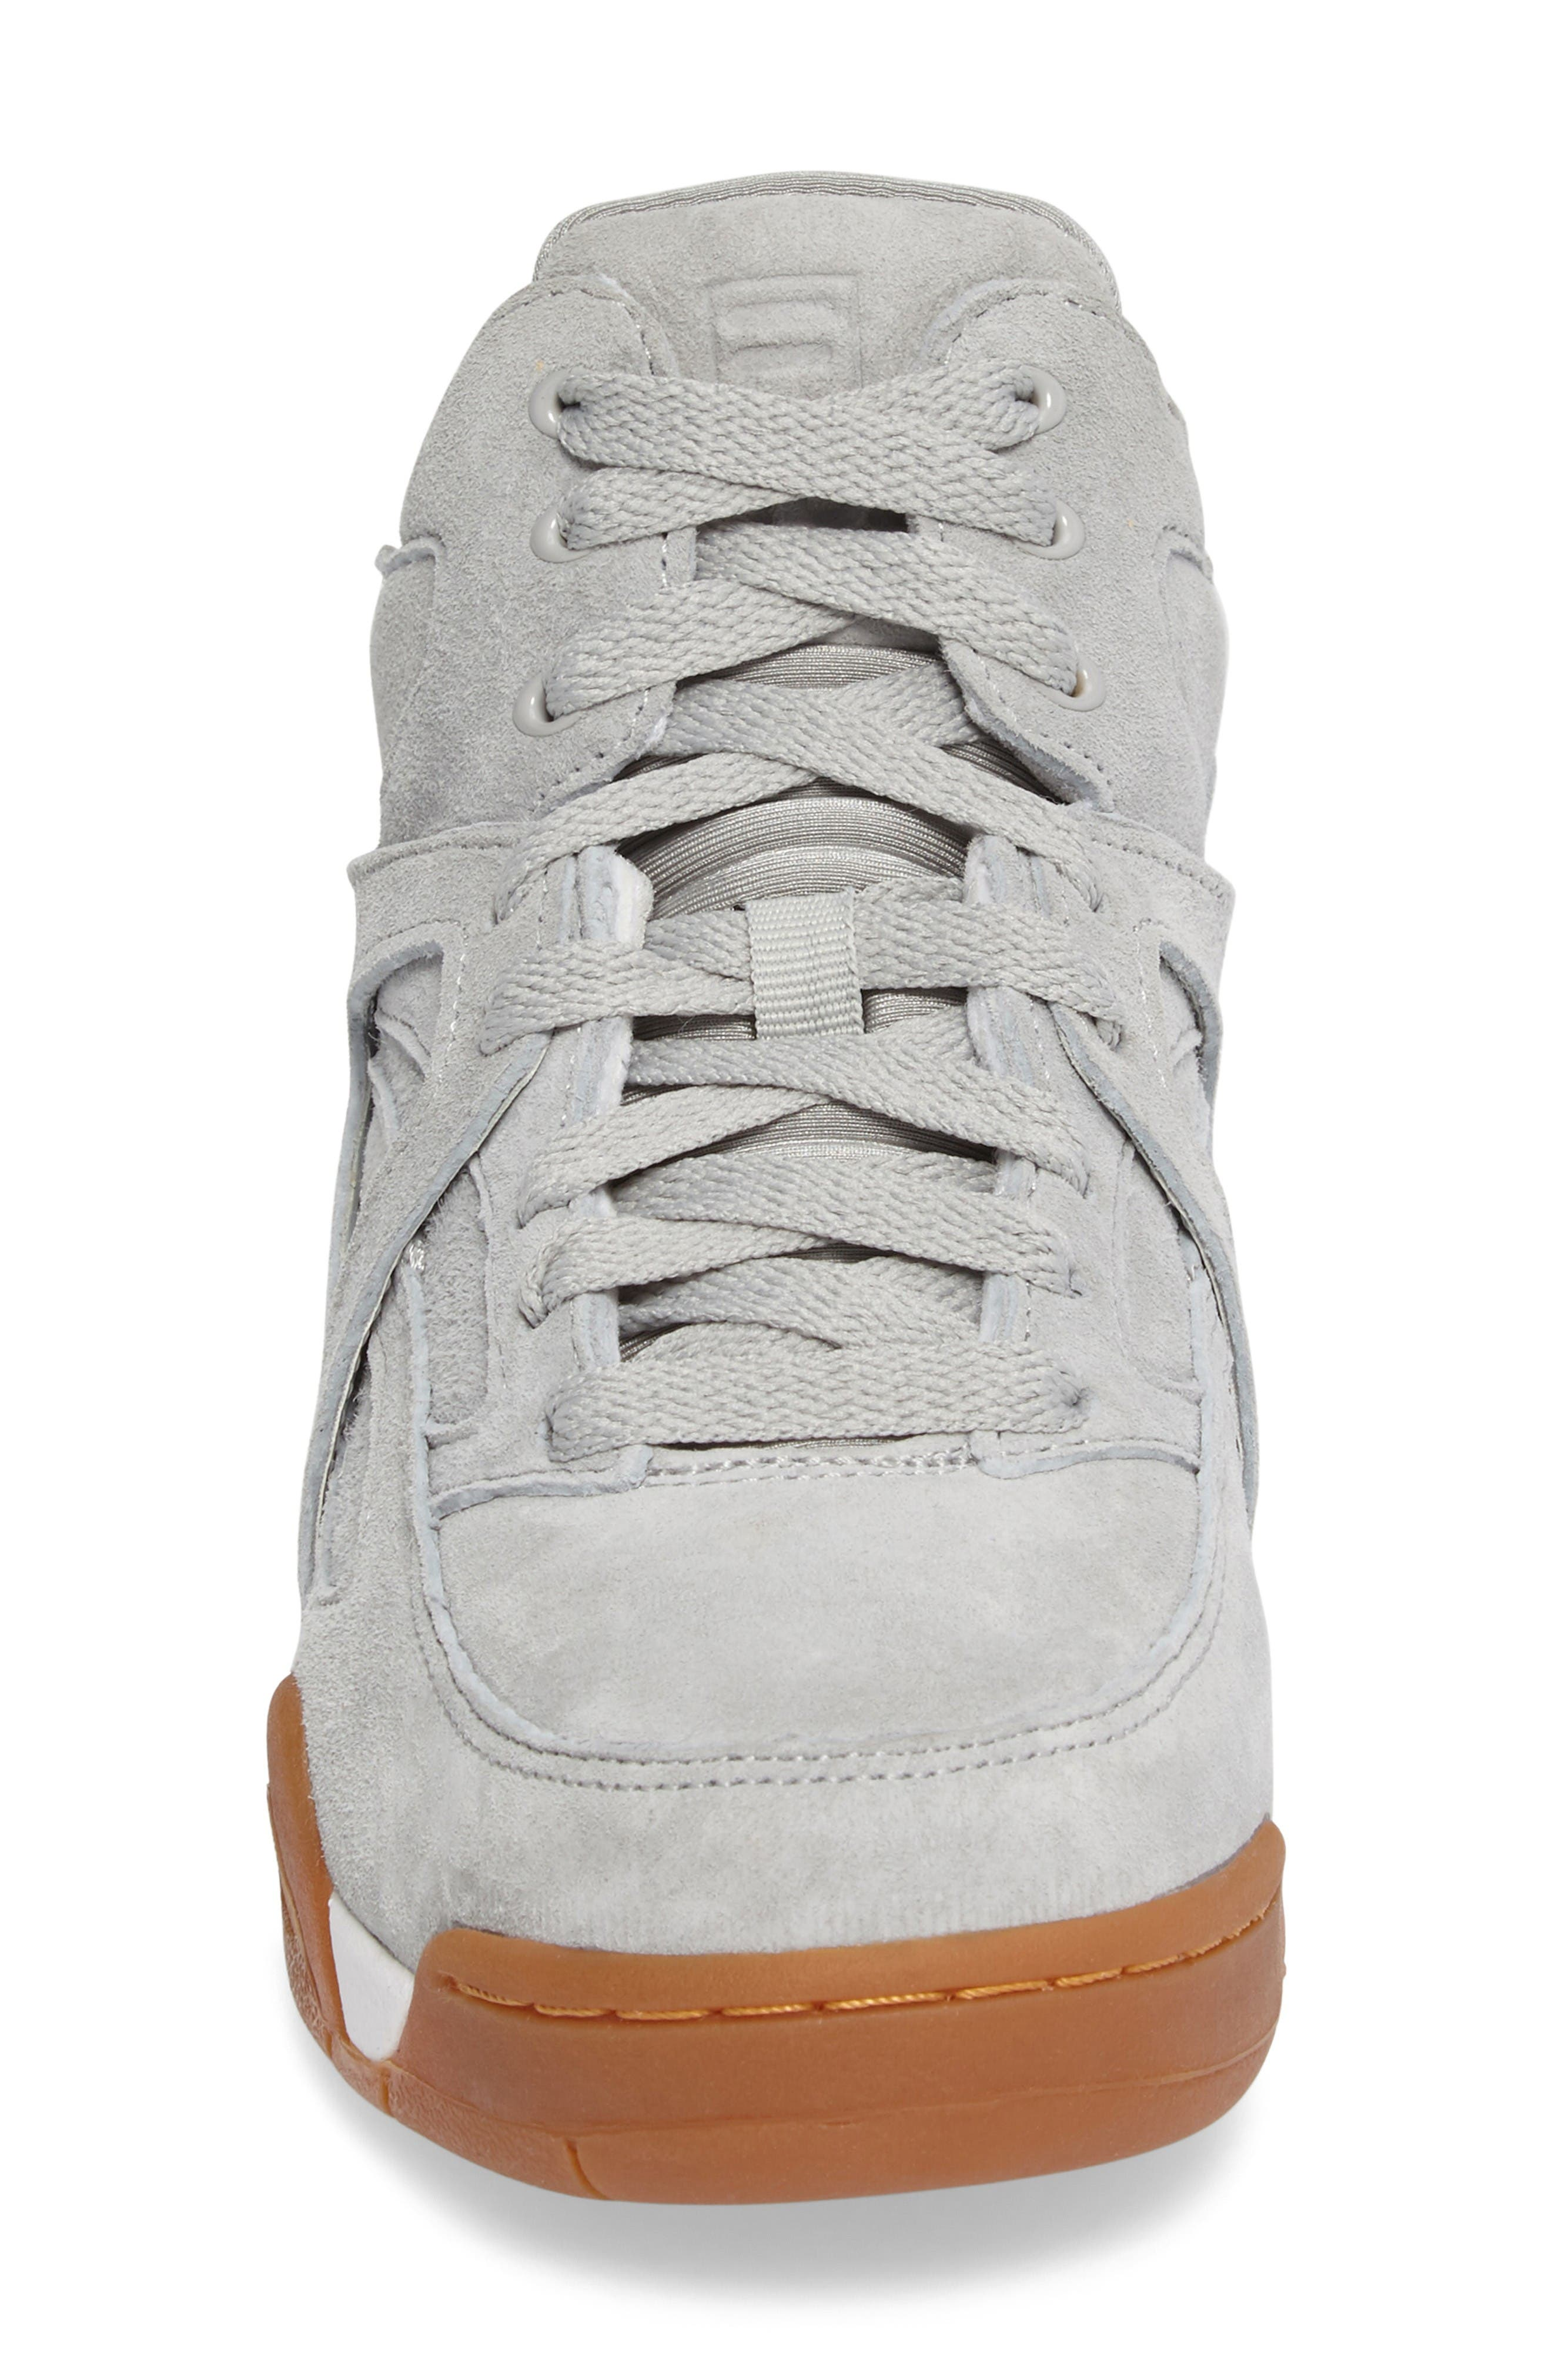 The Cage High Top Sneaker,                             Alternate thumbnail 4, color,                             High Rise Nubuck Leather